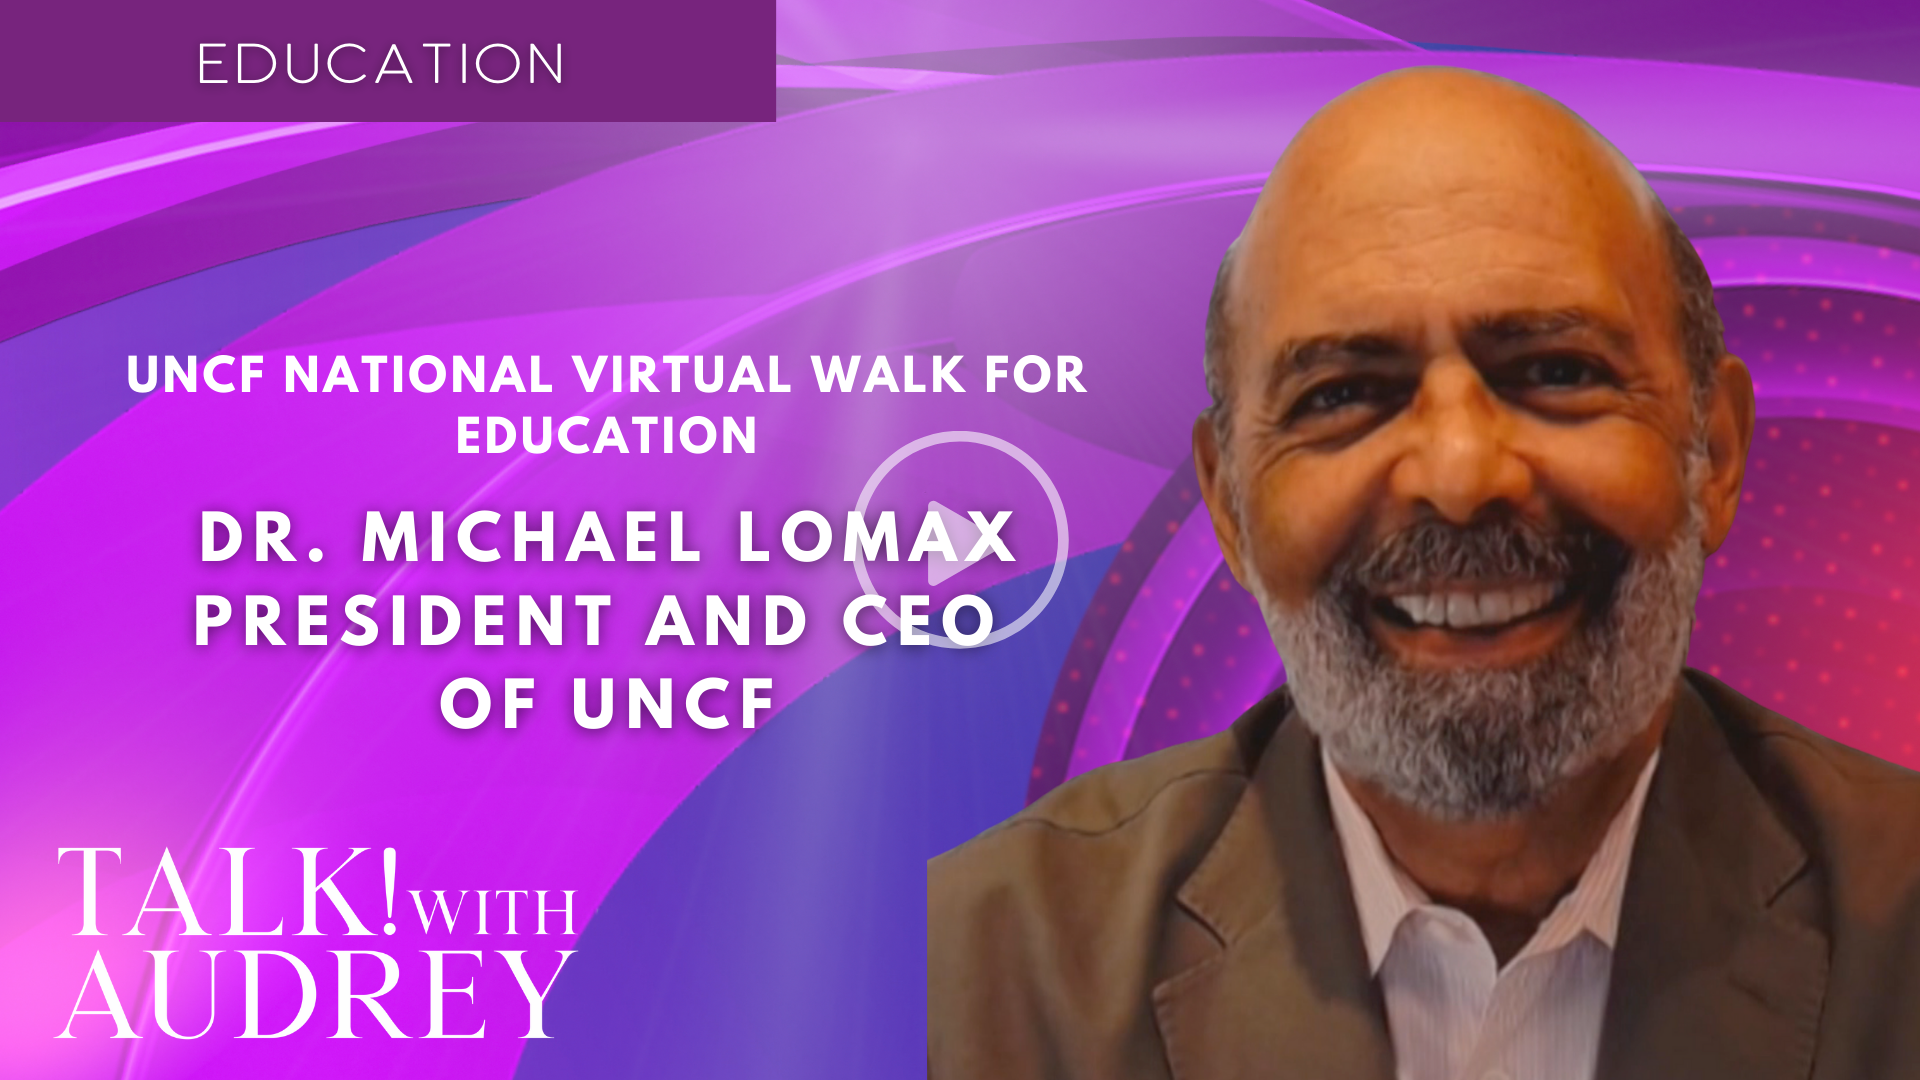 Dr. Michael Lomax, President and CEO of UNCF – UNCF National Virtual Walk for Education